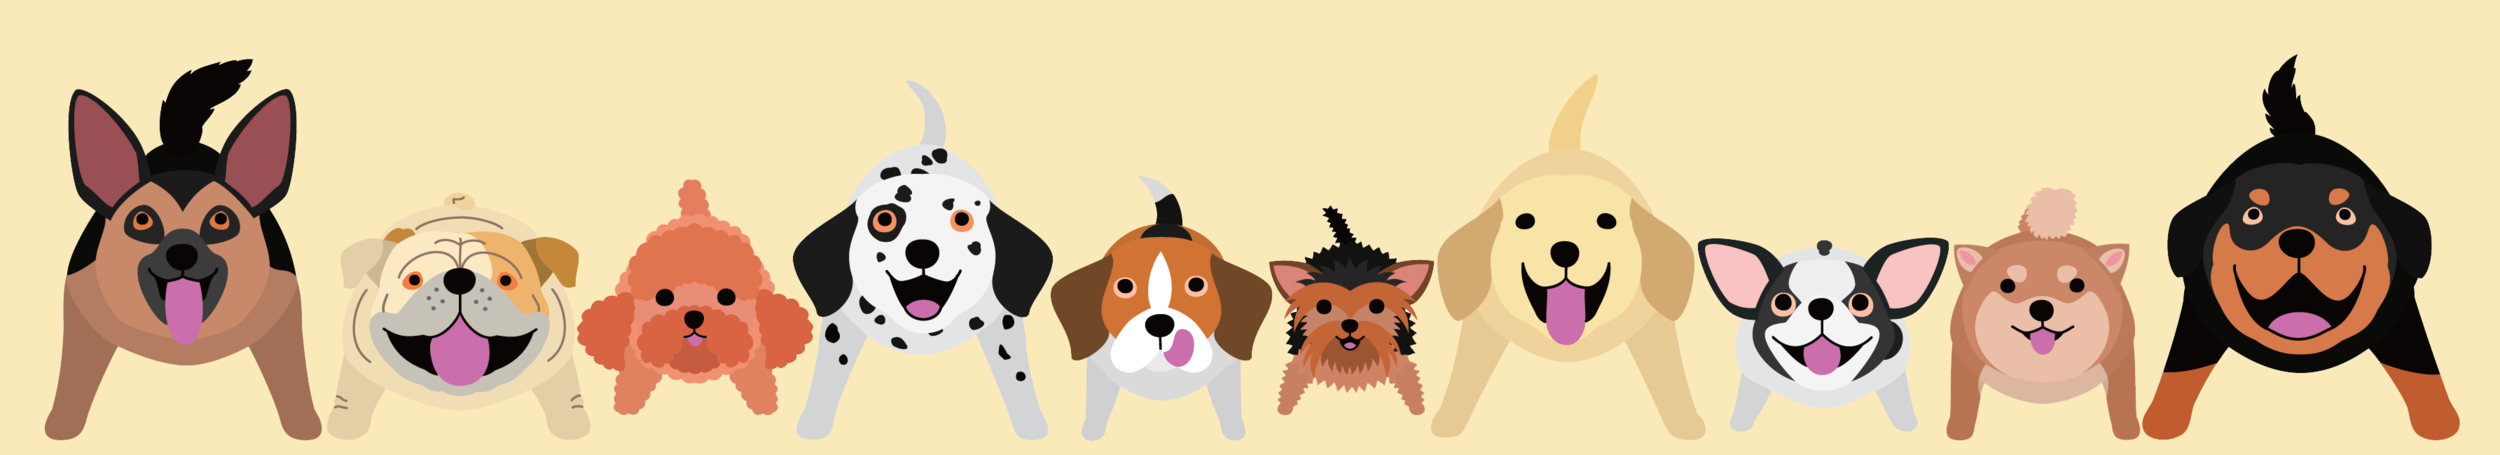 happy puppy border.png